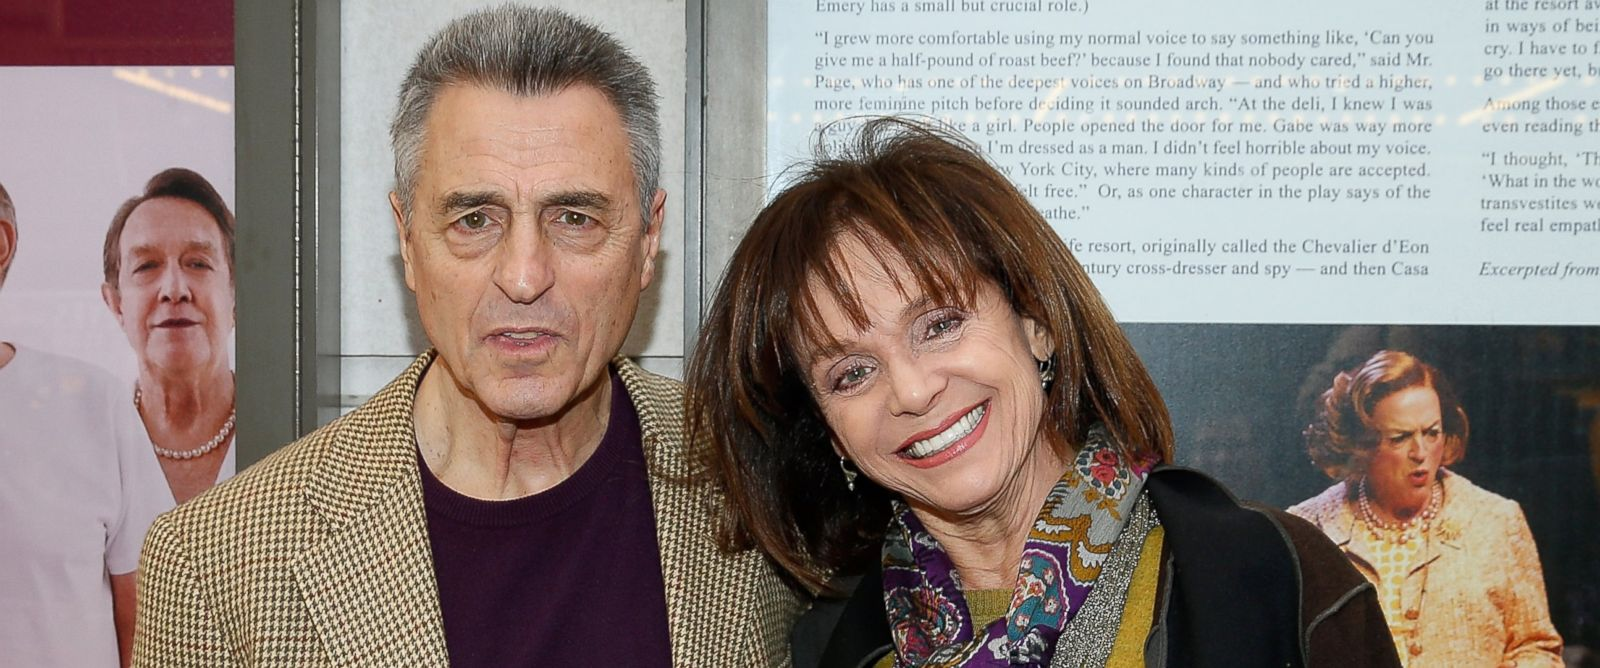 Valerie Harper now